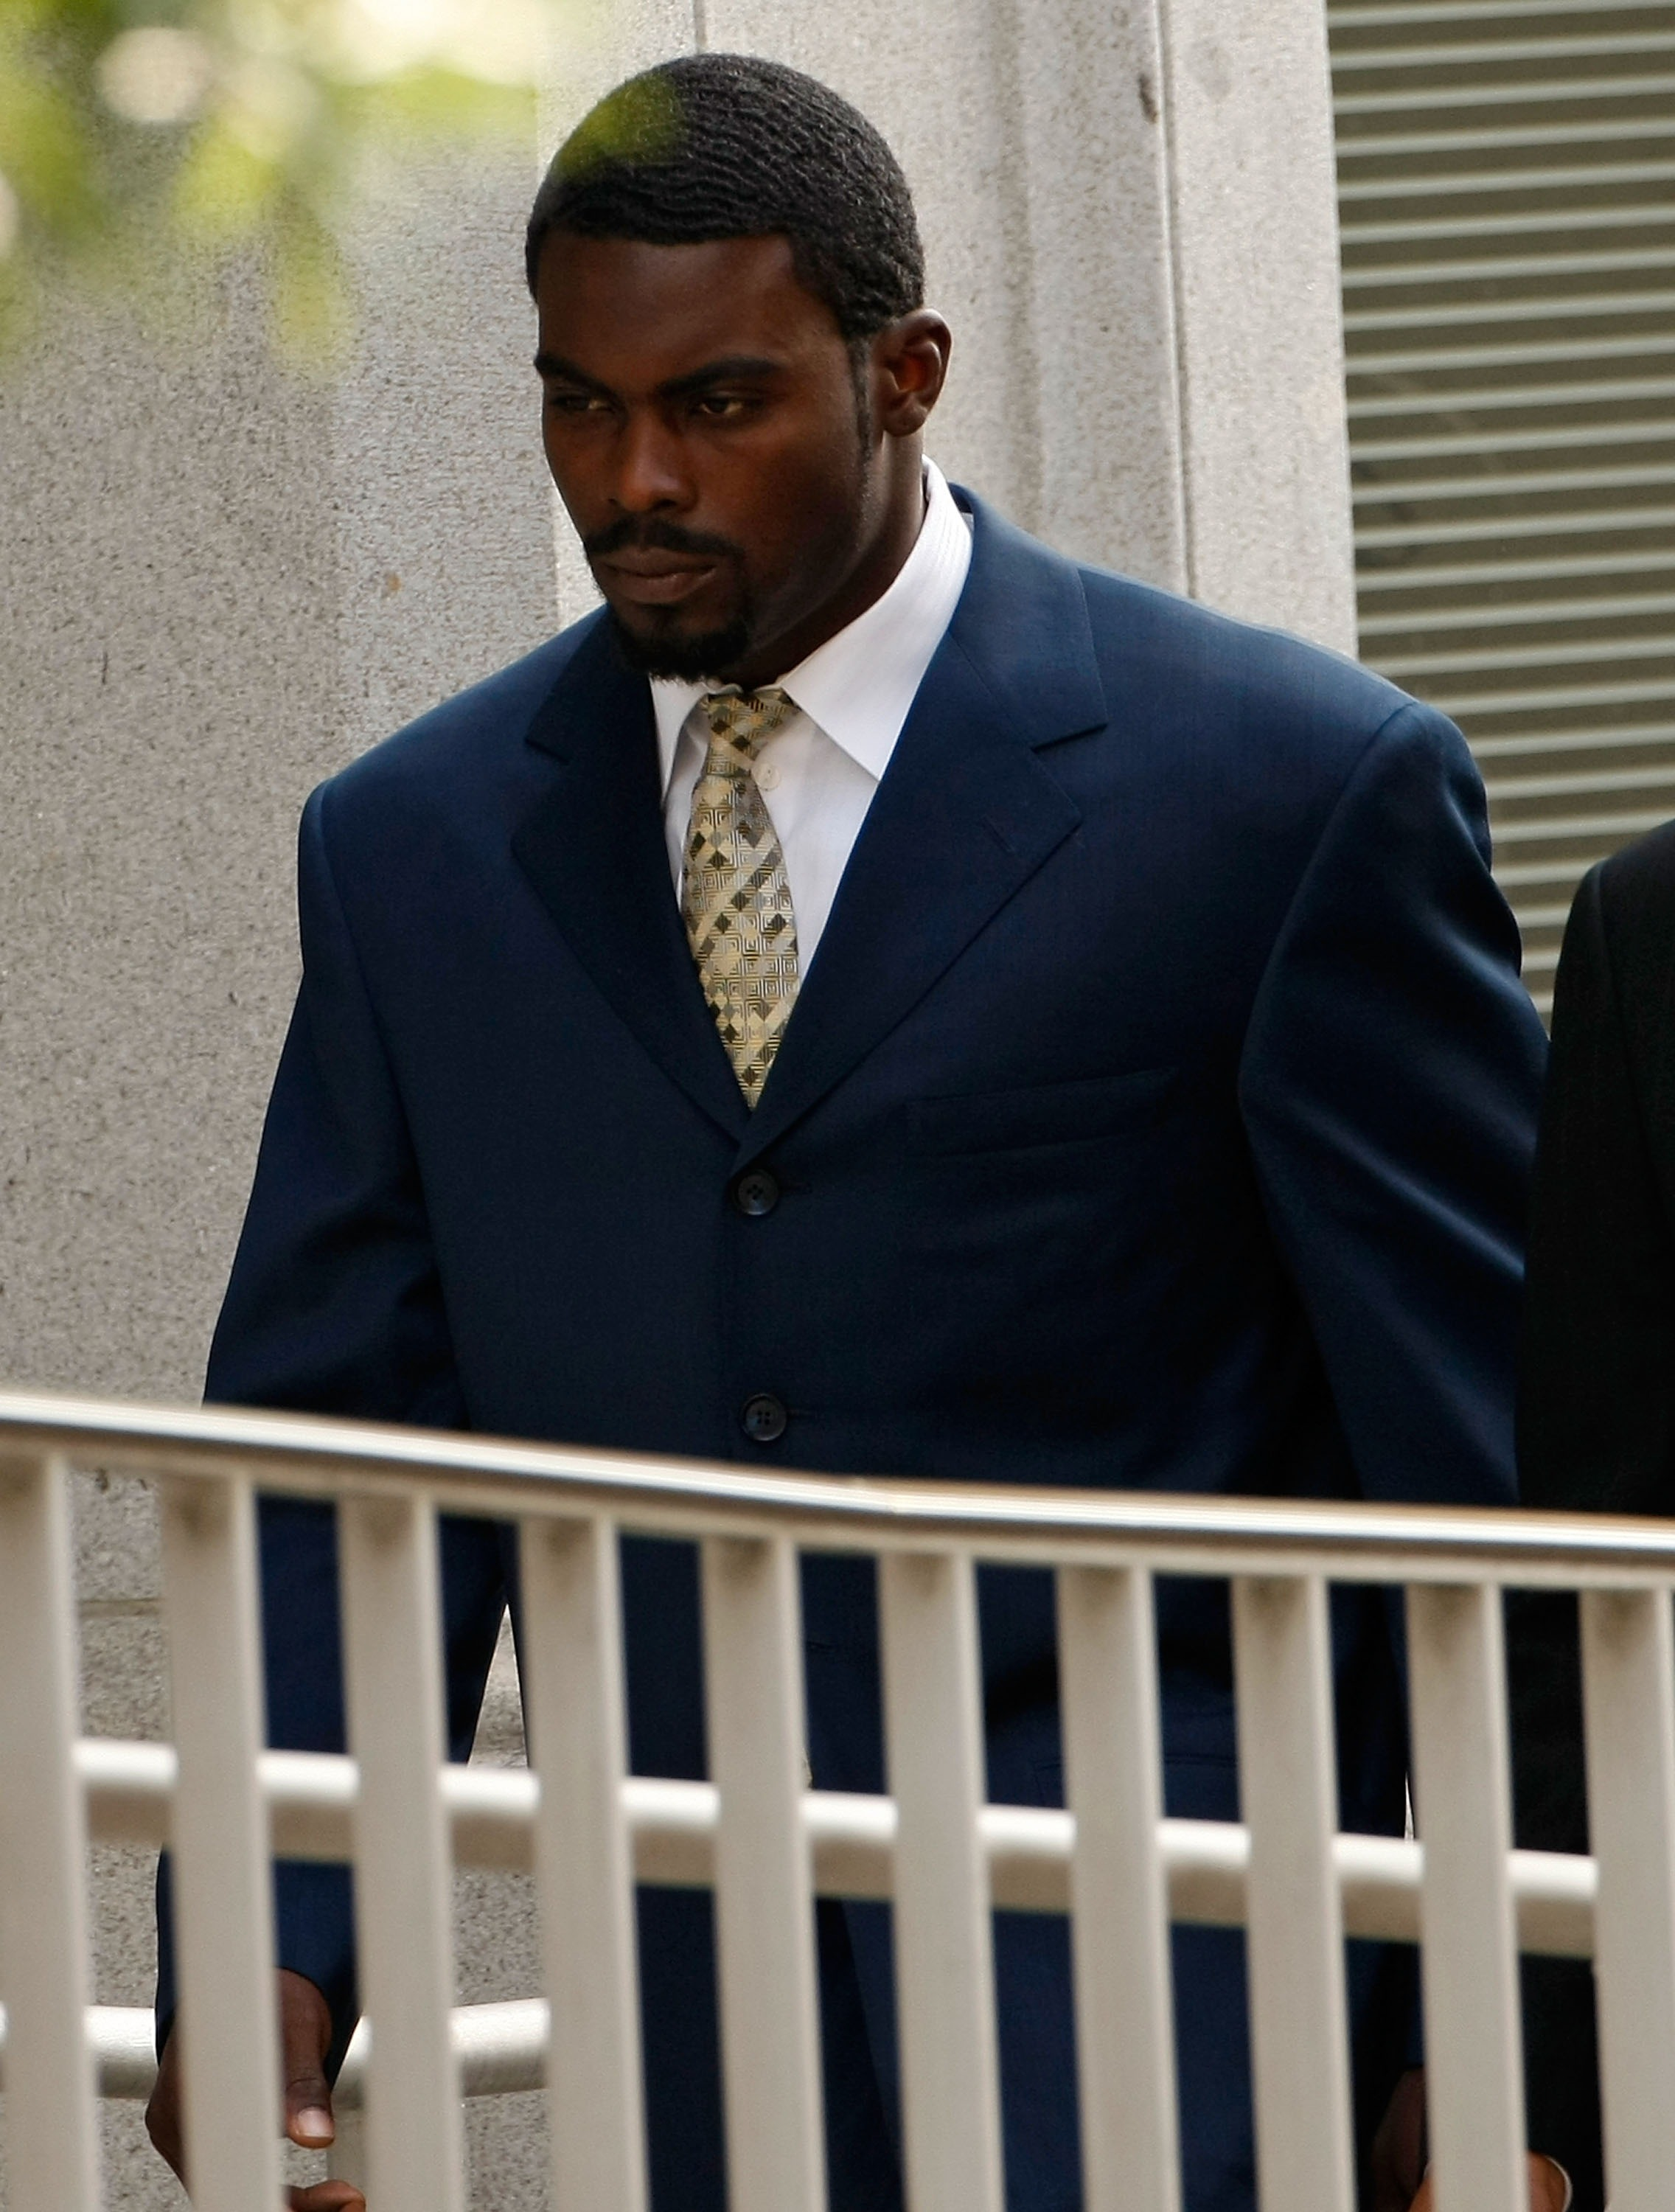 RICHMOND, VA - AUGUST 27:  Atlanta Falcons quarterback Michael Vick (L) arrives at federal court August 27, 2007 in Richmond, Virginia. The football star was expected to plead guilty to a federal dogfighting conspiracy charge. The NFL has suspended Vick i